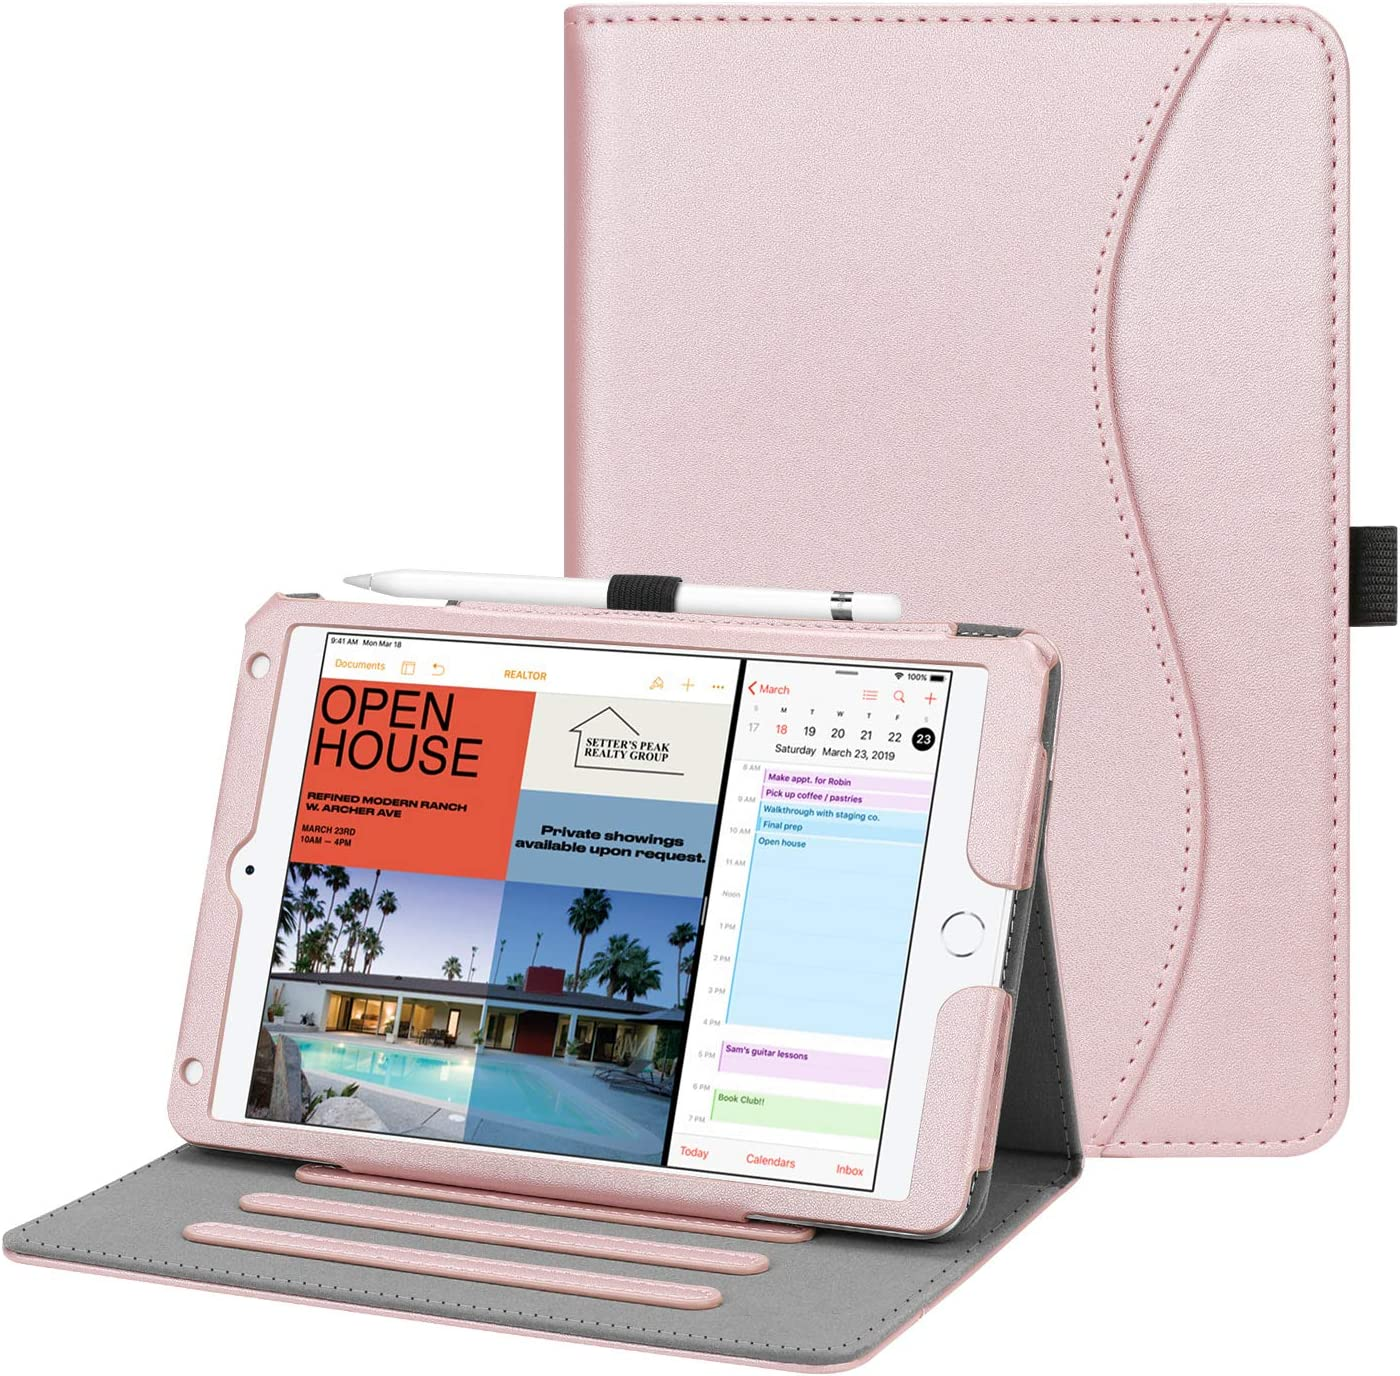 Fintie Case for iPad Mini 4 - [Corner Protection] Multi-Angle Viewing Folio Smart Stand Protective Cover with Pocket, Auto Wake/Sleep, Compatible with iPad Mini 5th Gen 2019 (Rose Gold)